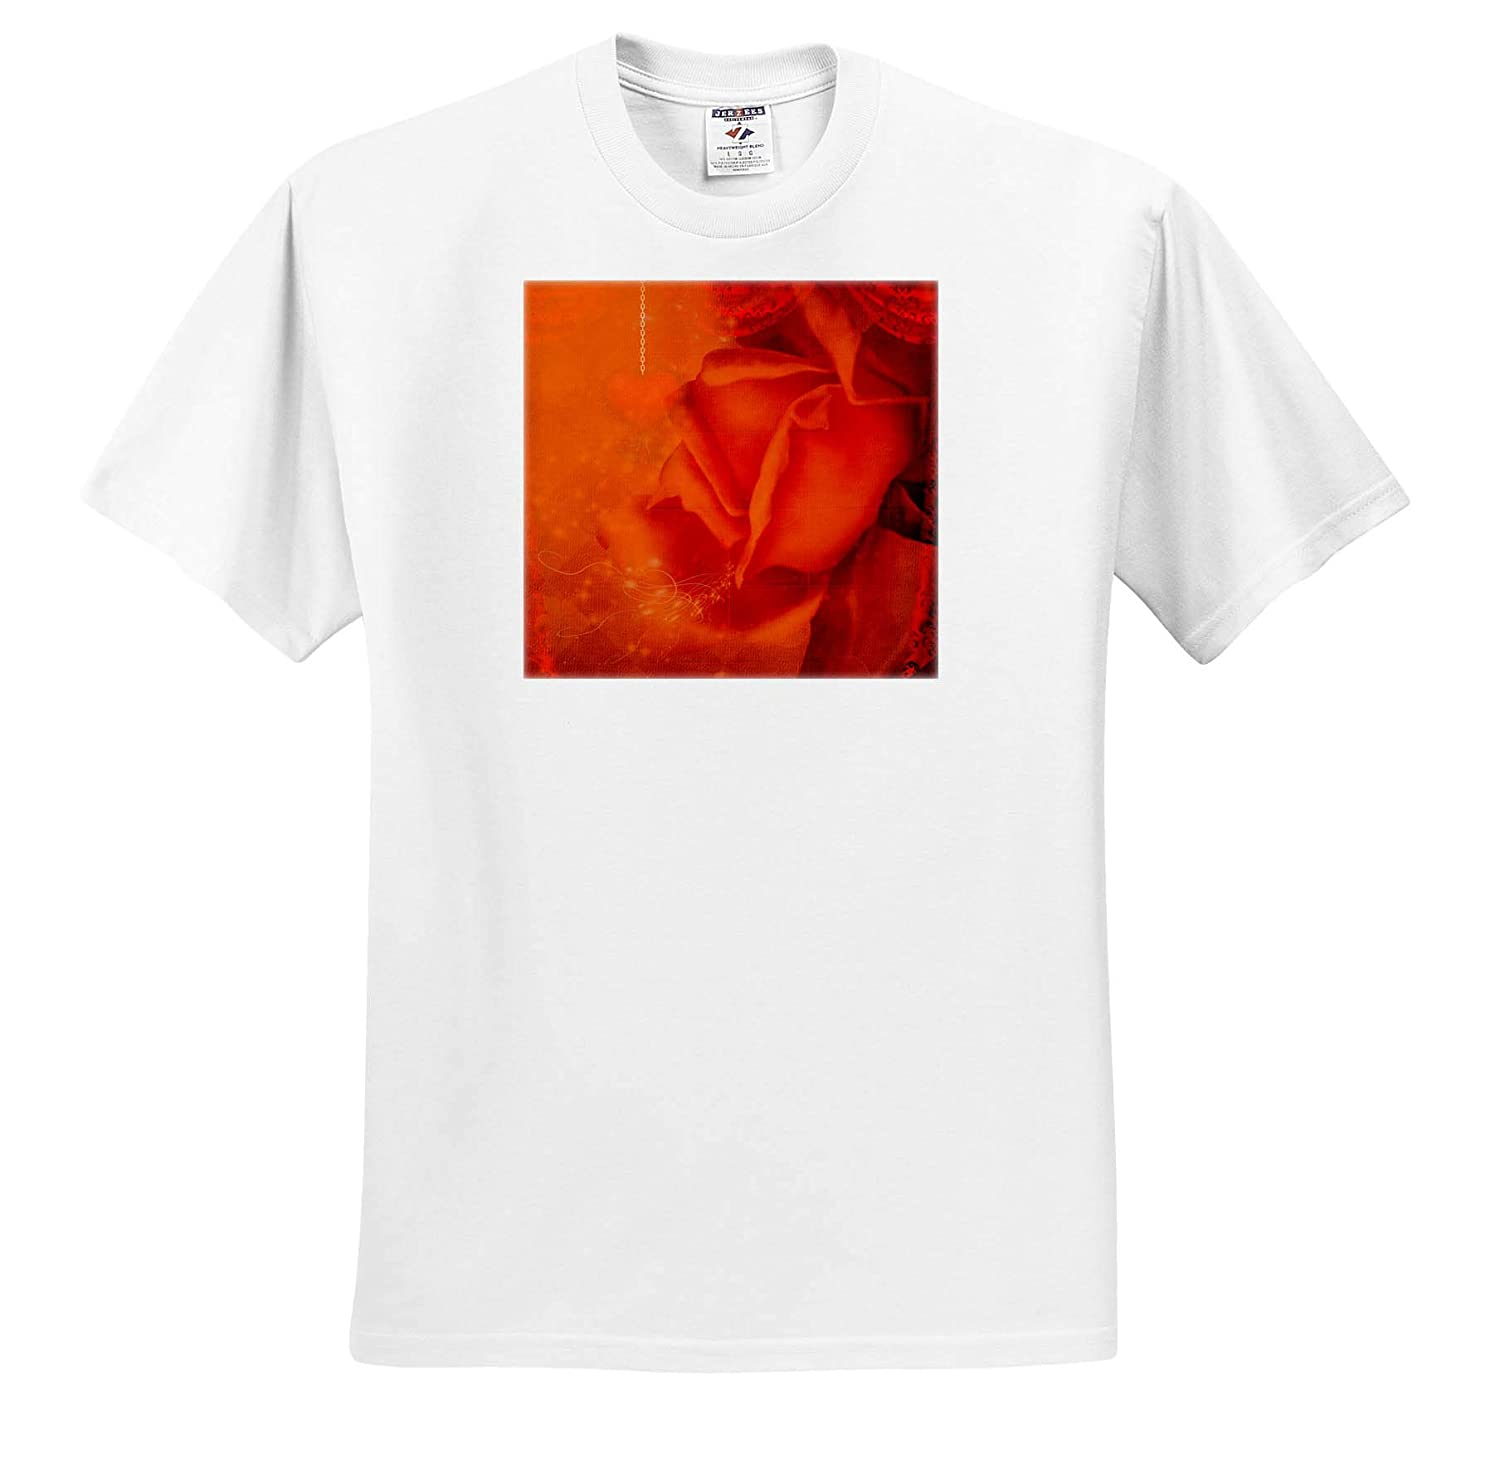 T-Shirts Wonderful Roses in Soft Colors with Heart 3dRose Heike K/öhnen Design Nature Flowers